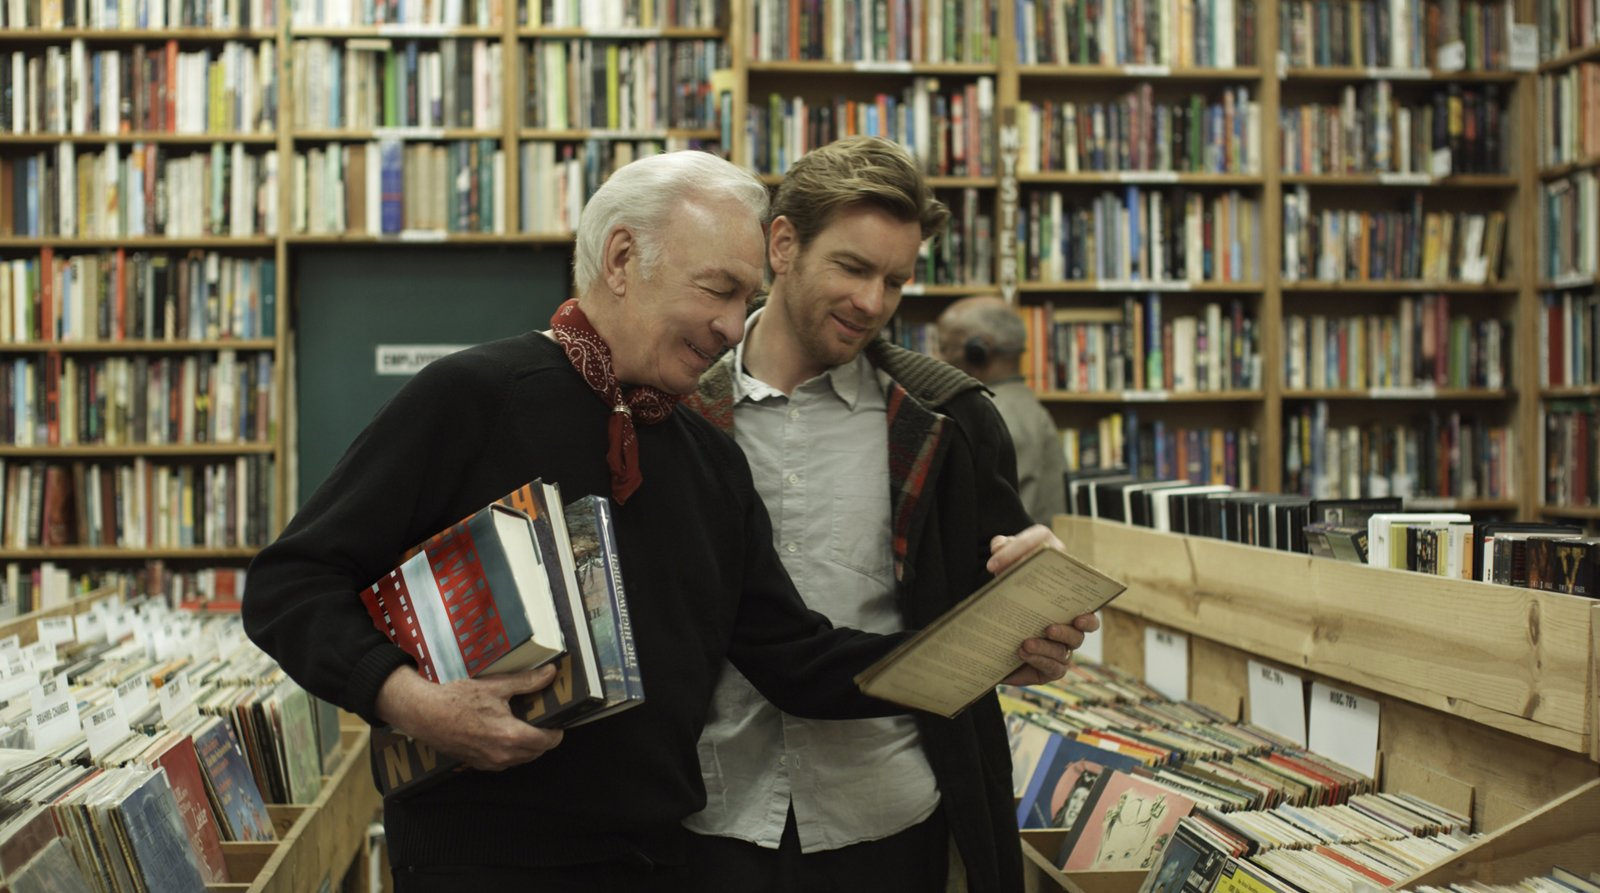 """Academy Award nominee Christopher Plummer (left) and Ewan McGregor (right) star as father and son in writer/director Mike Mills' BEGINNERS, a Focus Features release.  Photo credit: Focus Features  Photo 6 of 6 in Mills & McGregor on """"Beginners"""""""